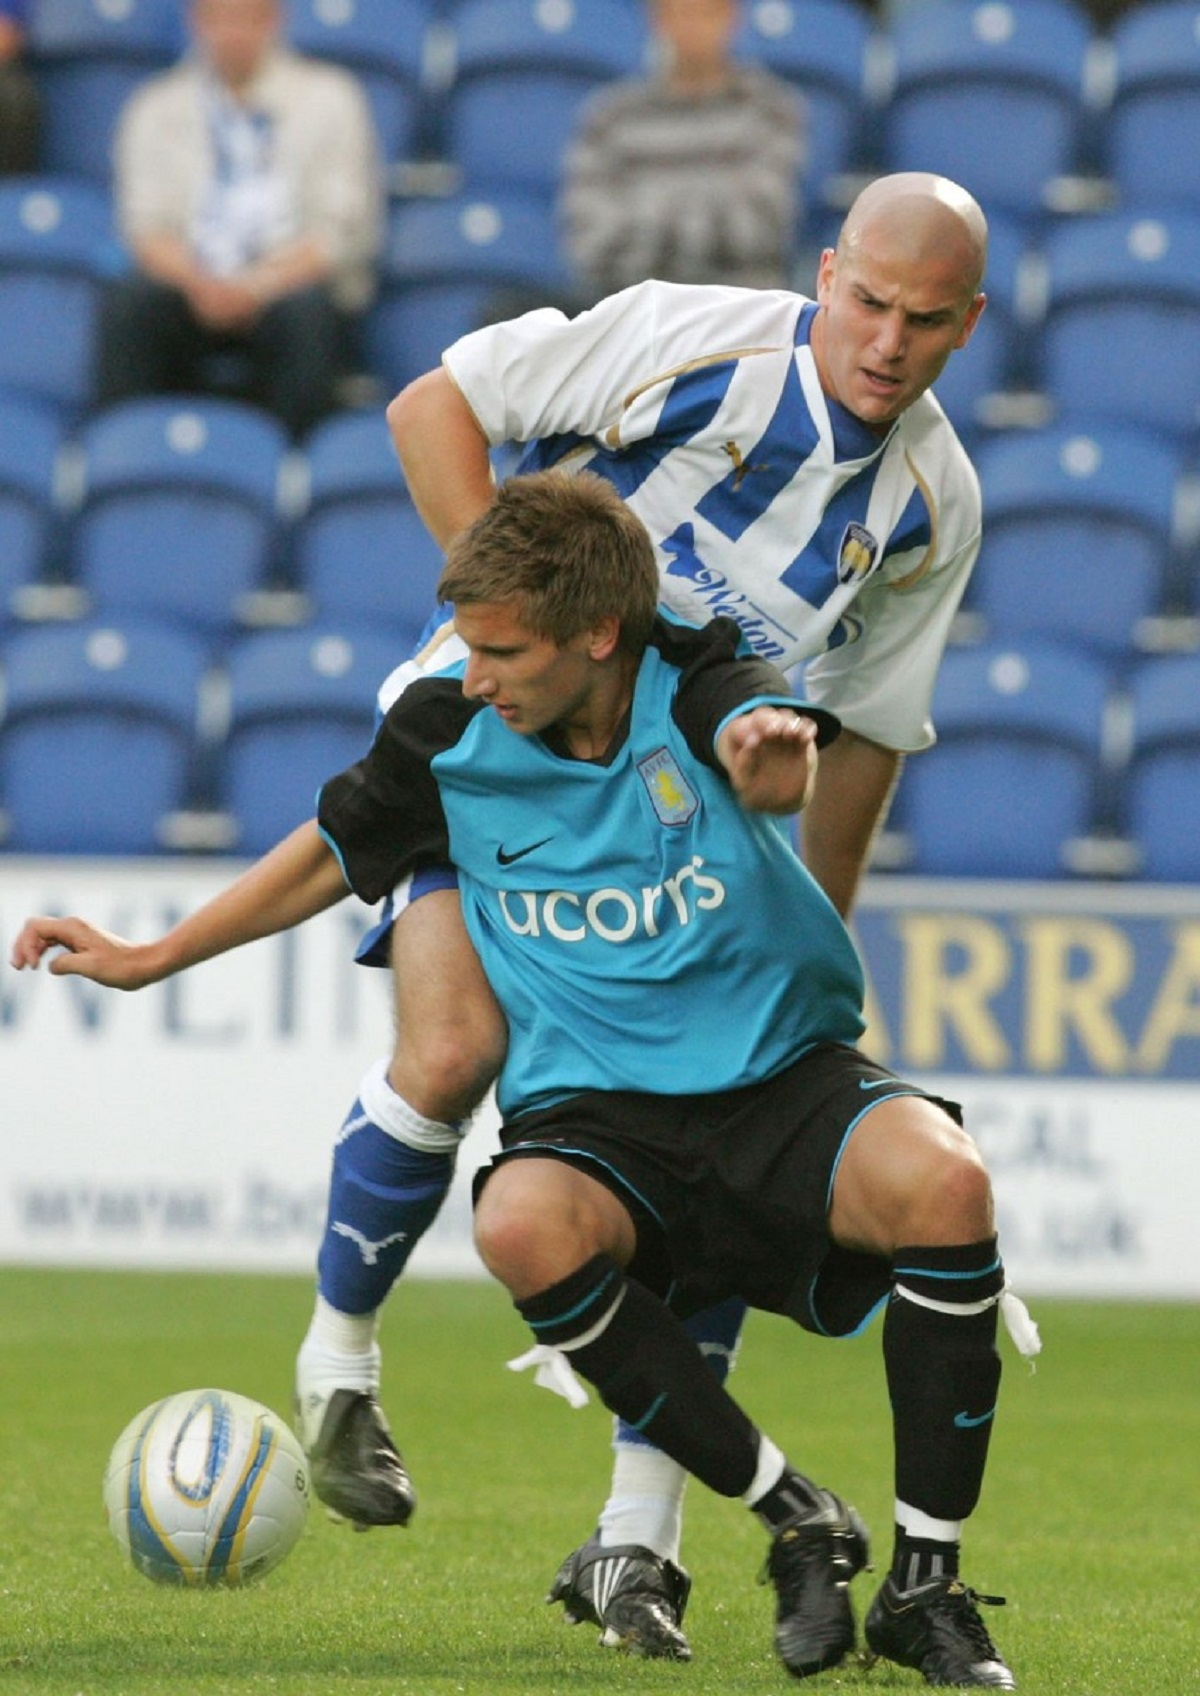 Tussle - Colchester United's Marc Tierney takes on Aston Villa winger Marc Albrighton during the friendly between the two sides, in 2009.